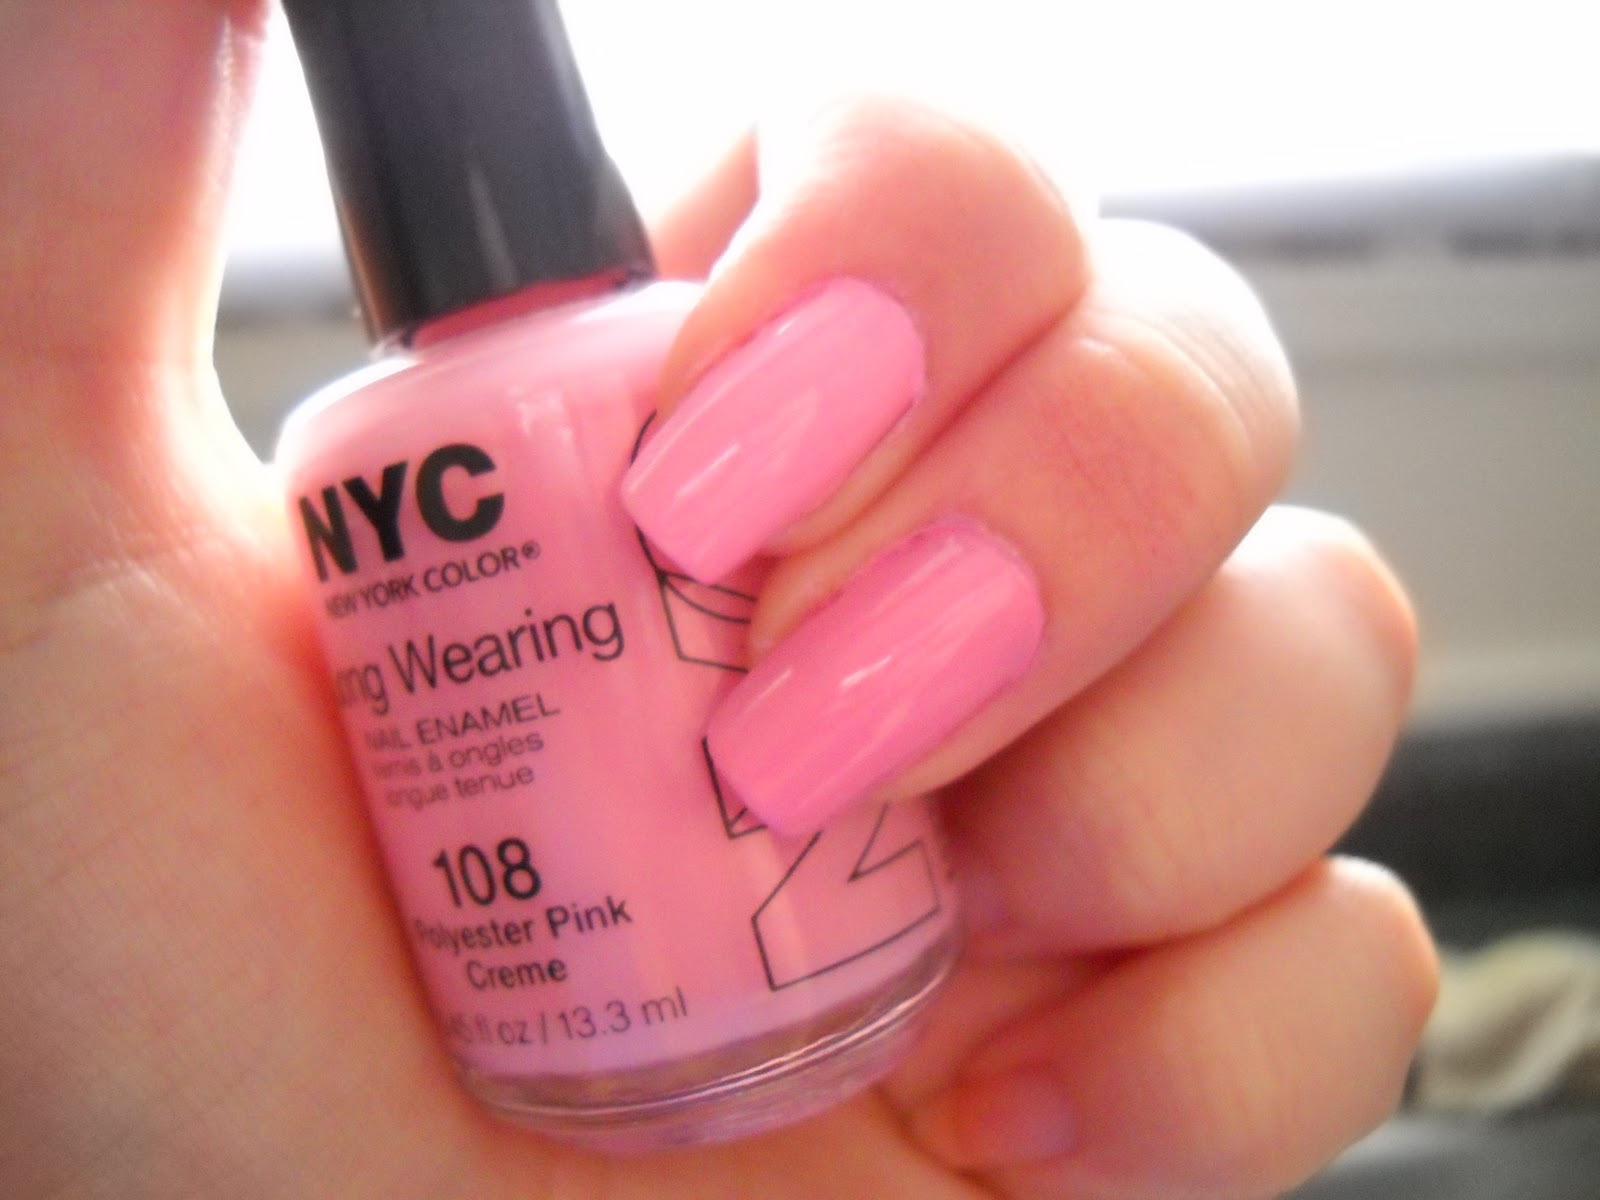 Beauty Nails Wet N Wild S Tickled Pink Vs N Y C S Polyester Pink Creme